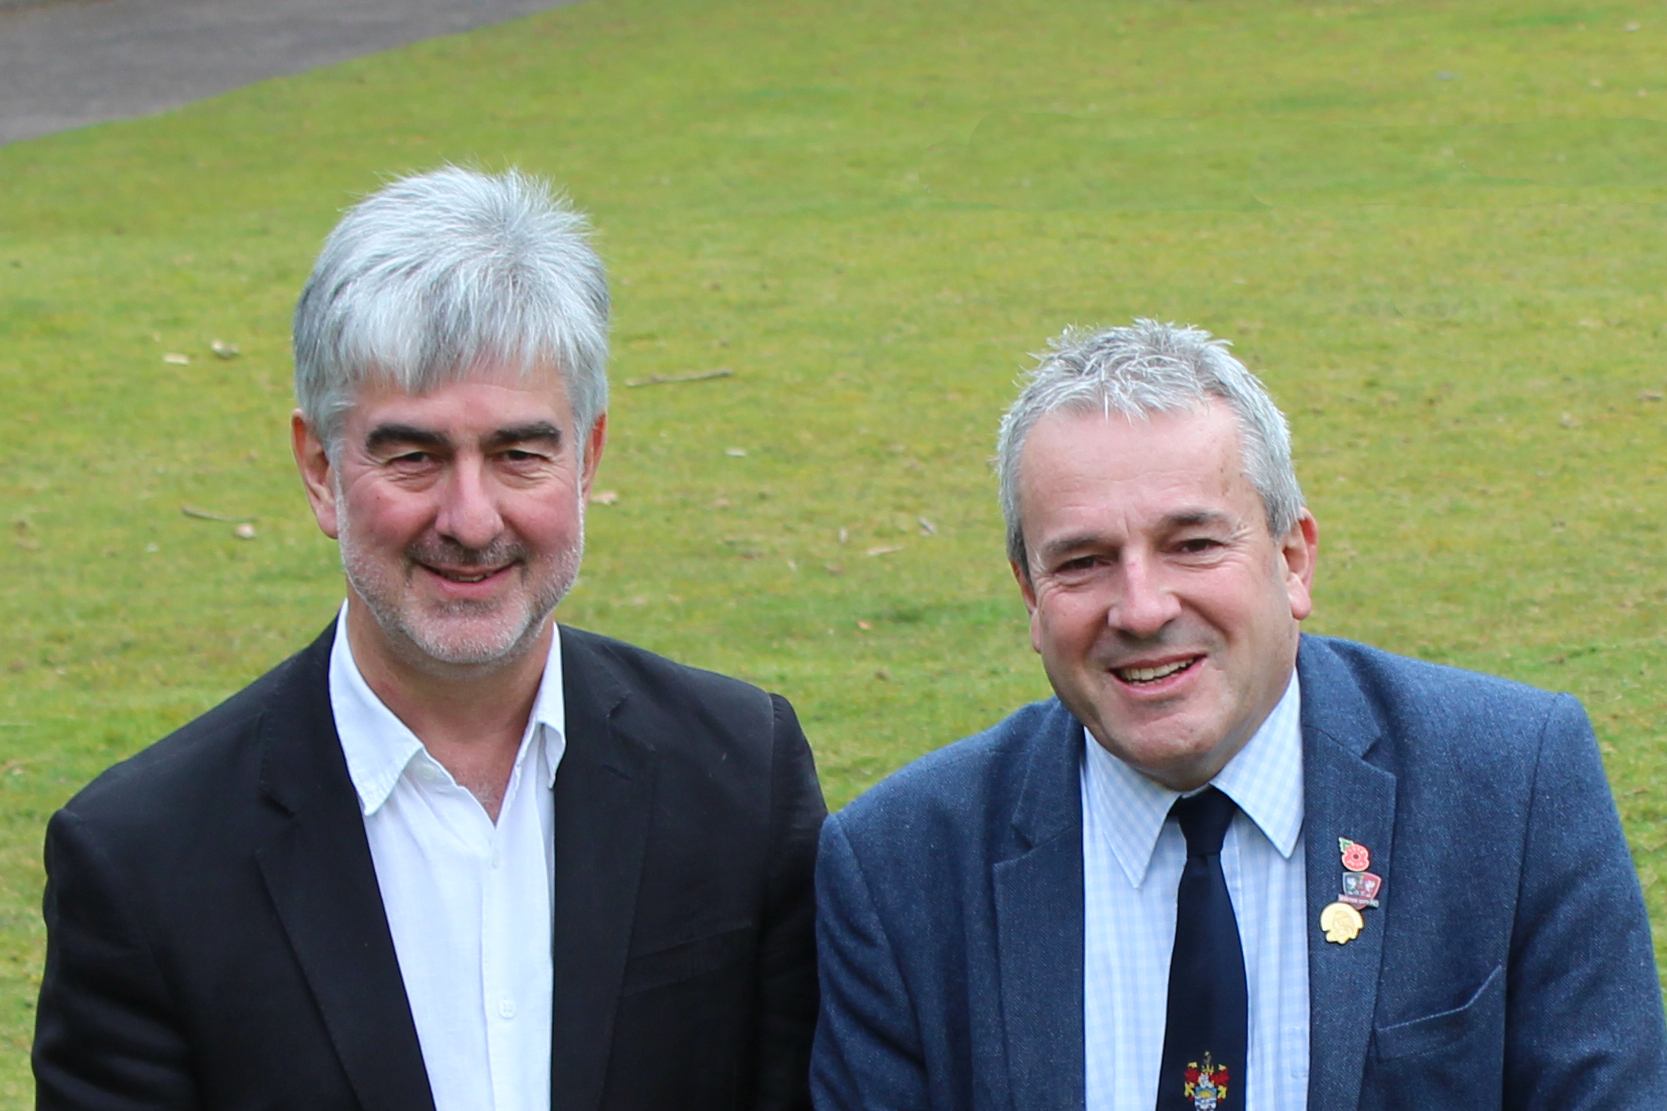 Pictured is new East Devon District Council Leader Cllr Ian Thomas (left) with Deputy Leader Cllr Philip Skinner.